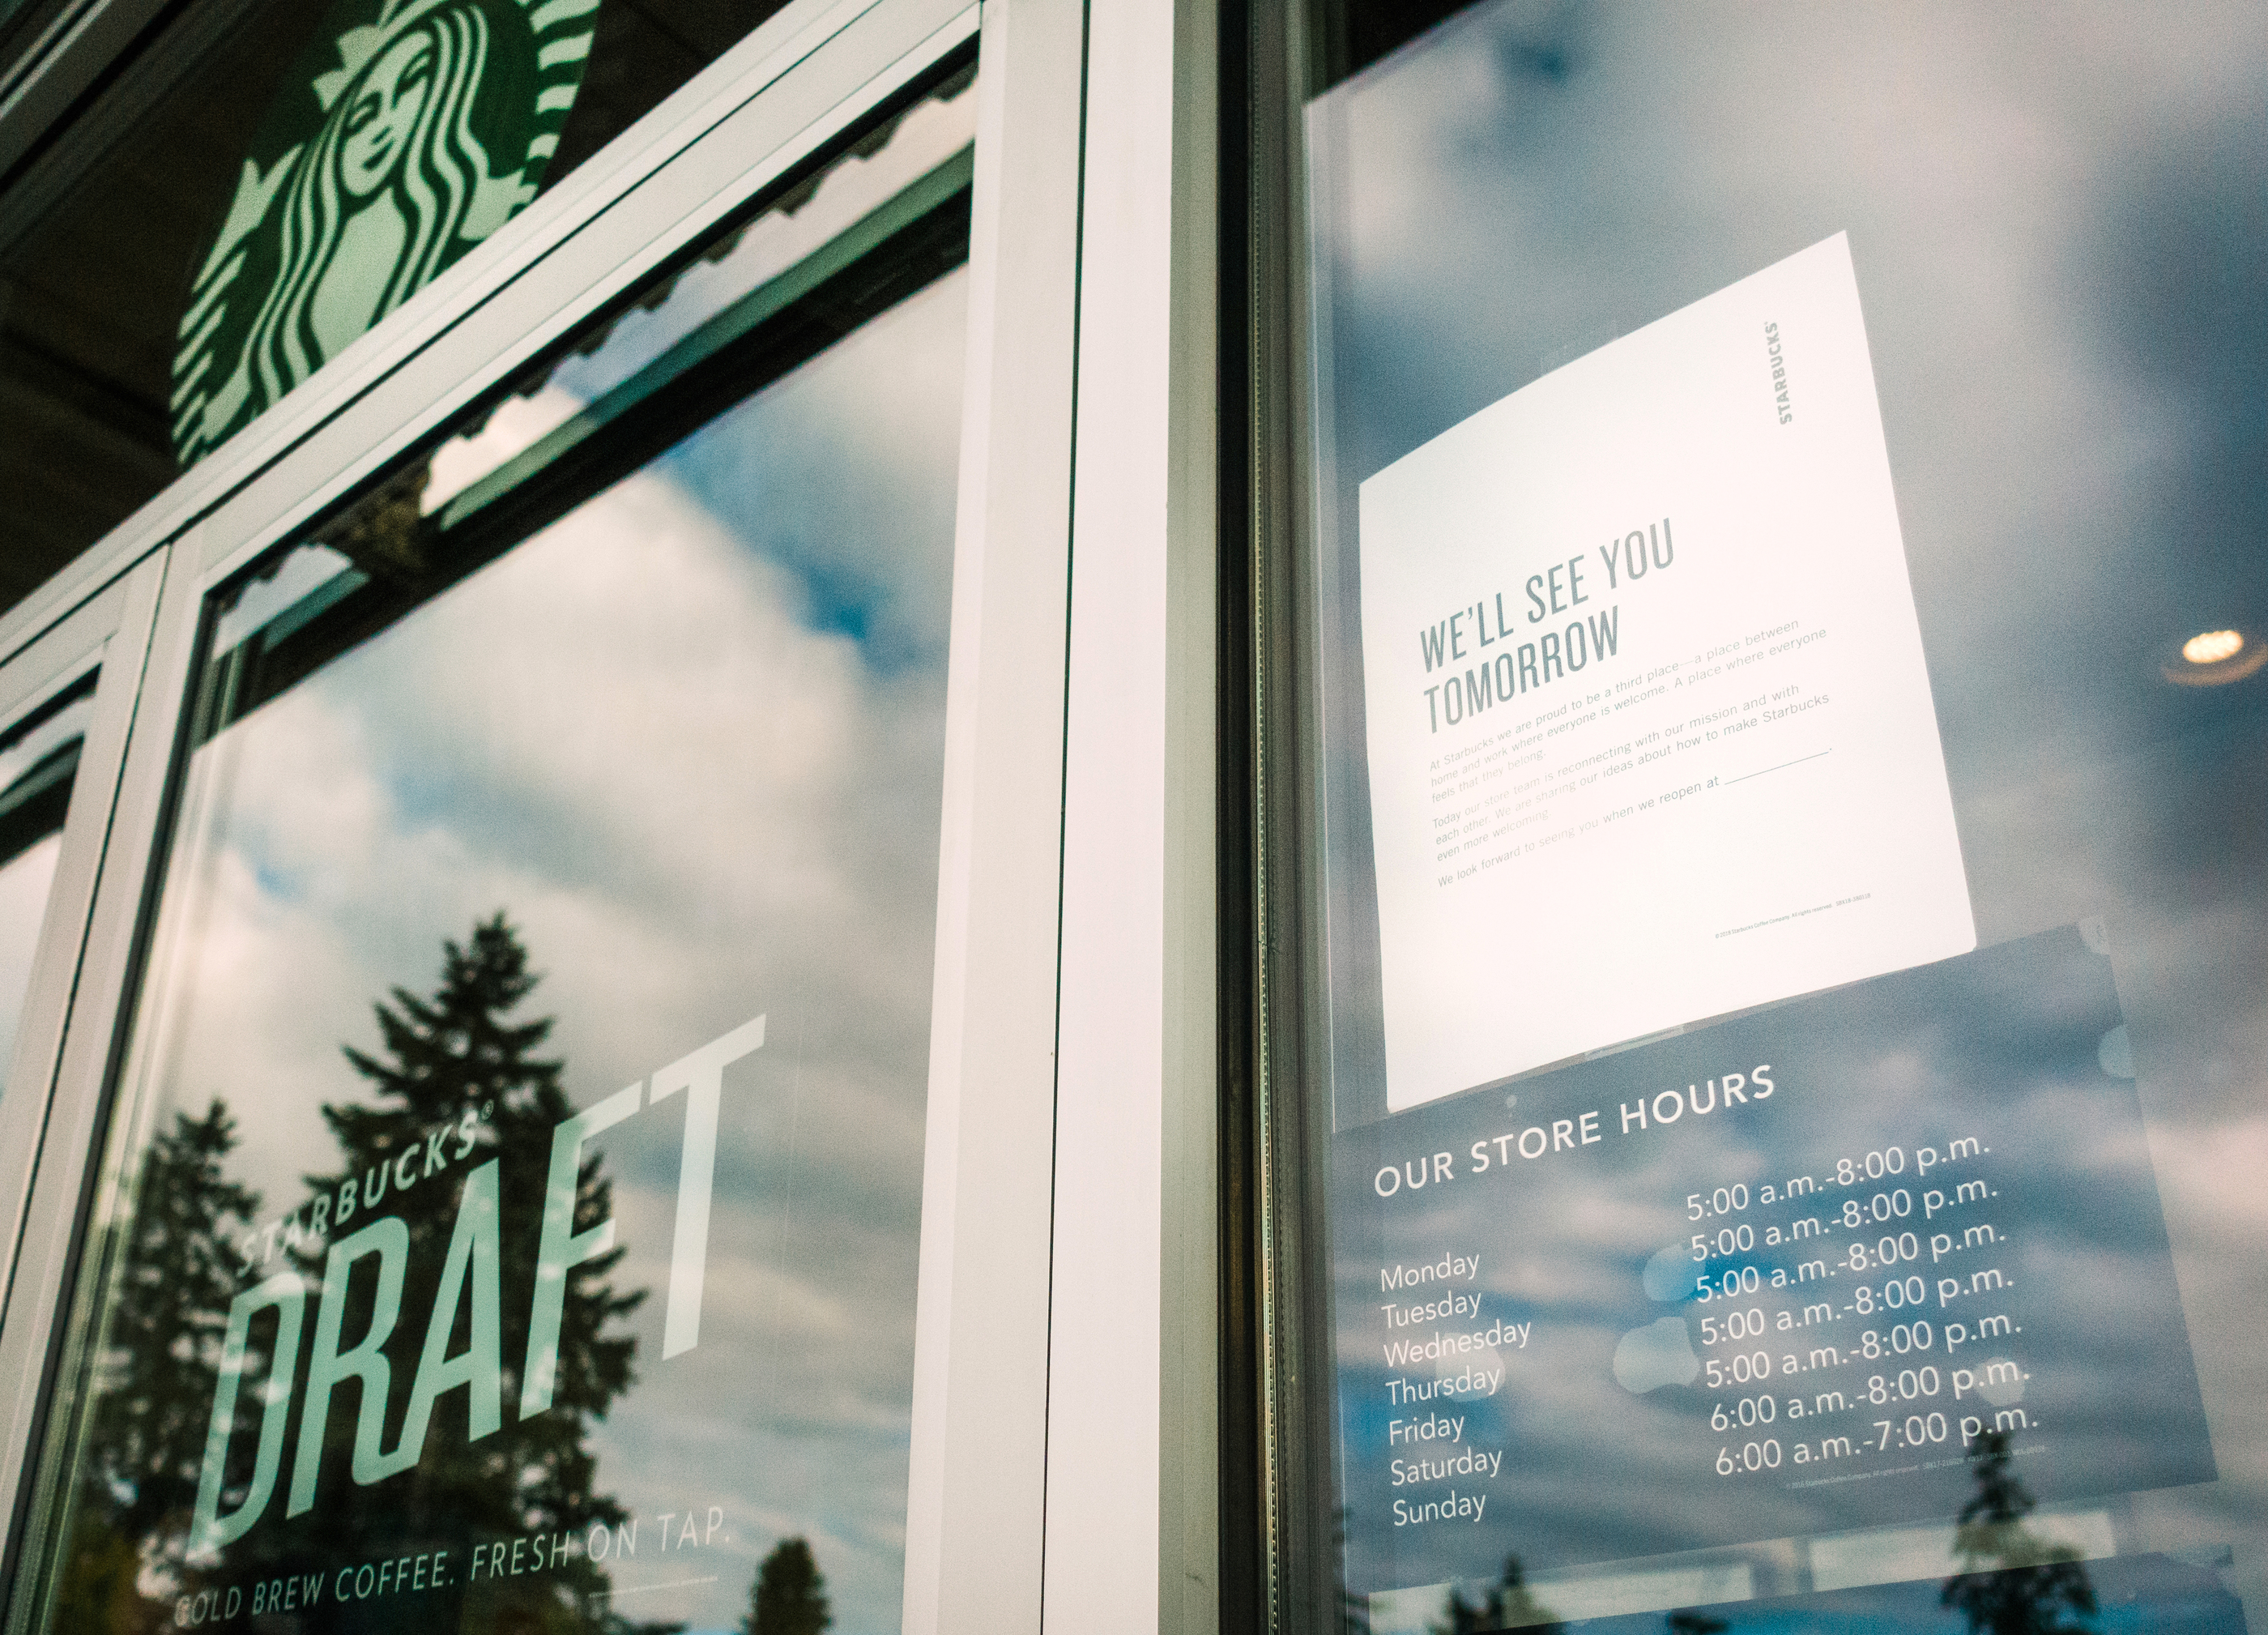 ec96b8e90ea99 Starbucks to Close All U.S. Stores for Racial-Bias Education